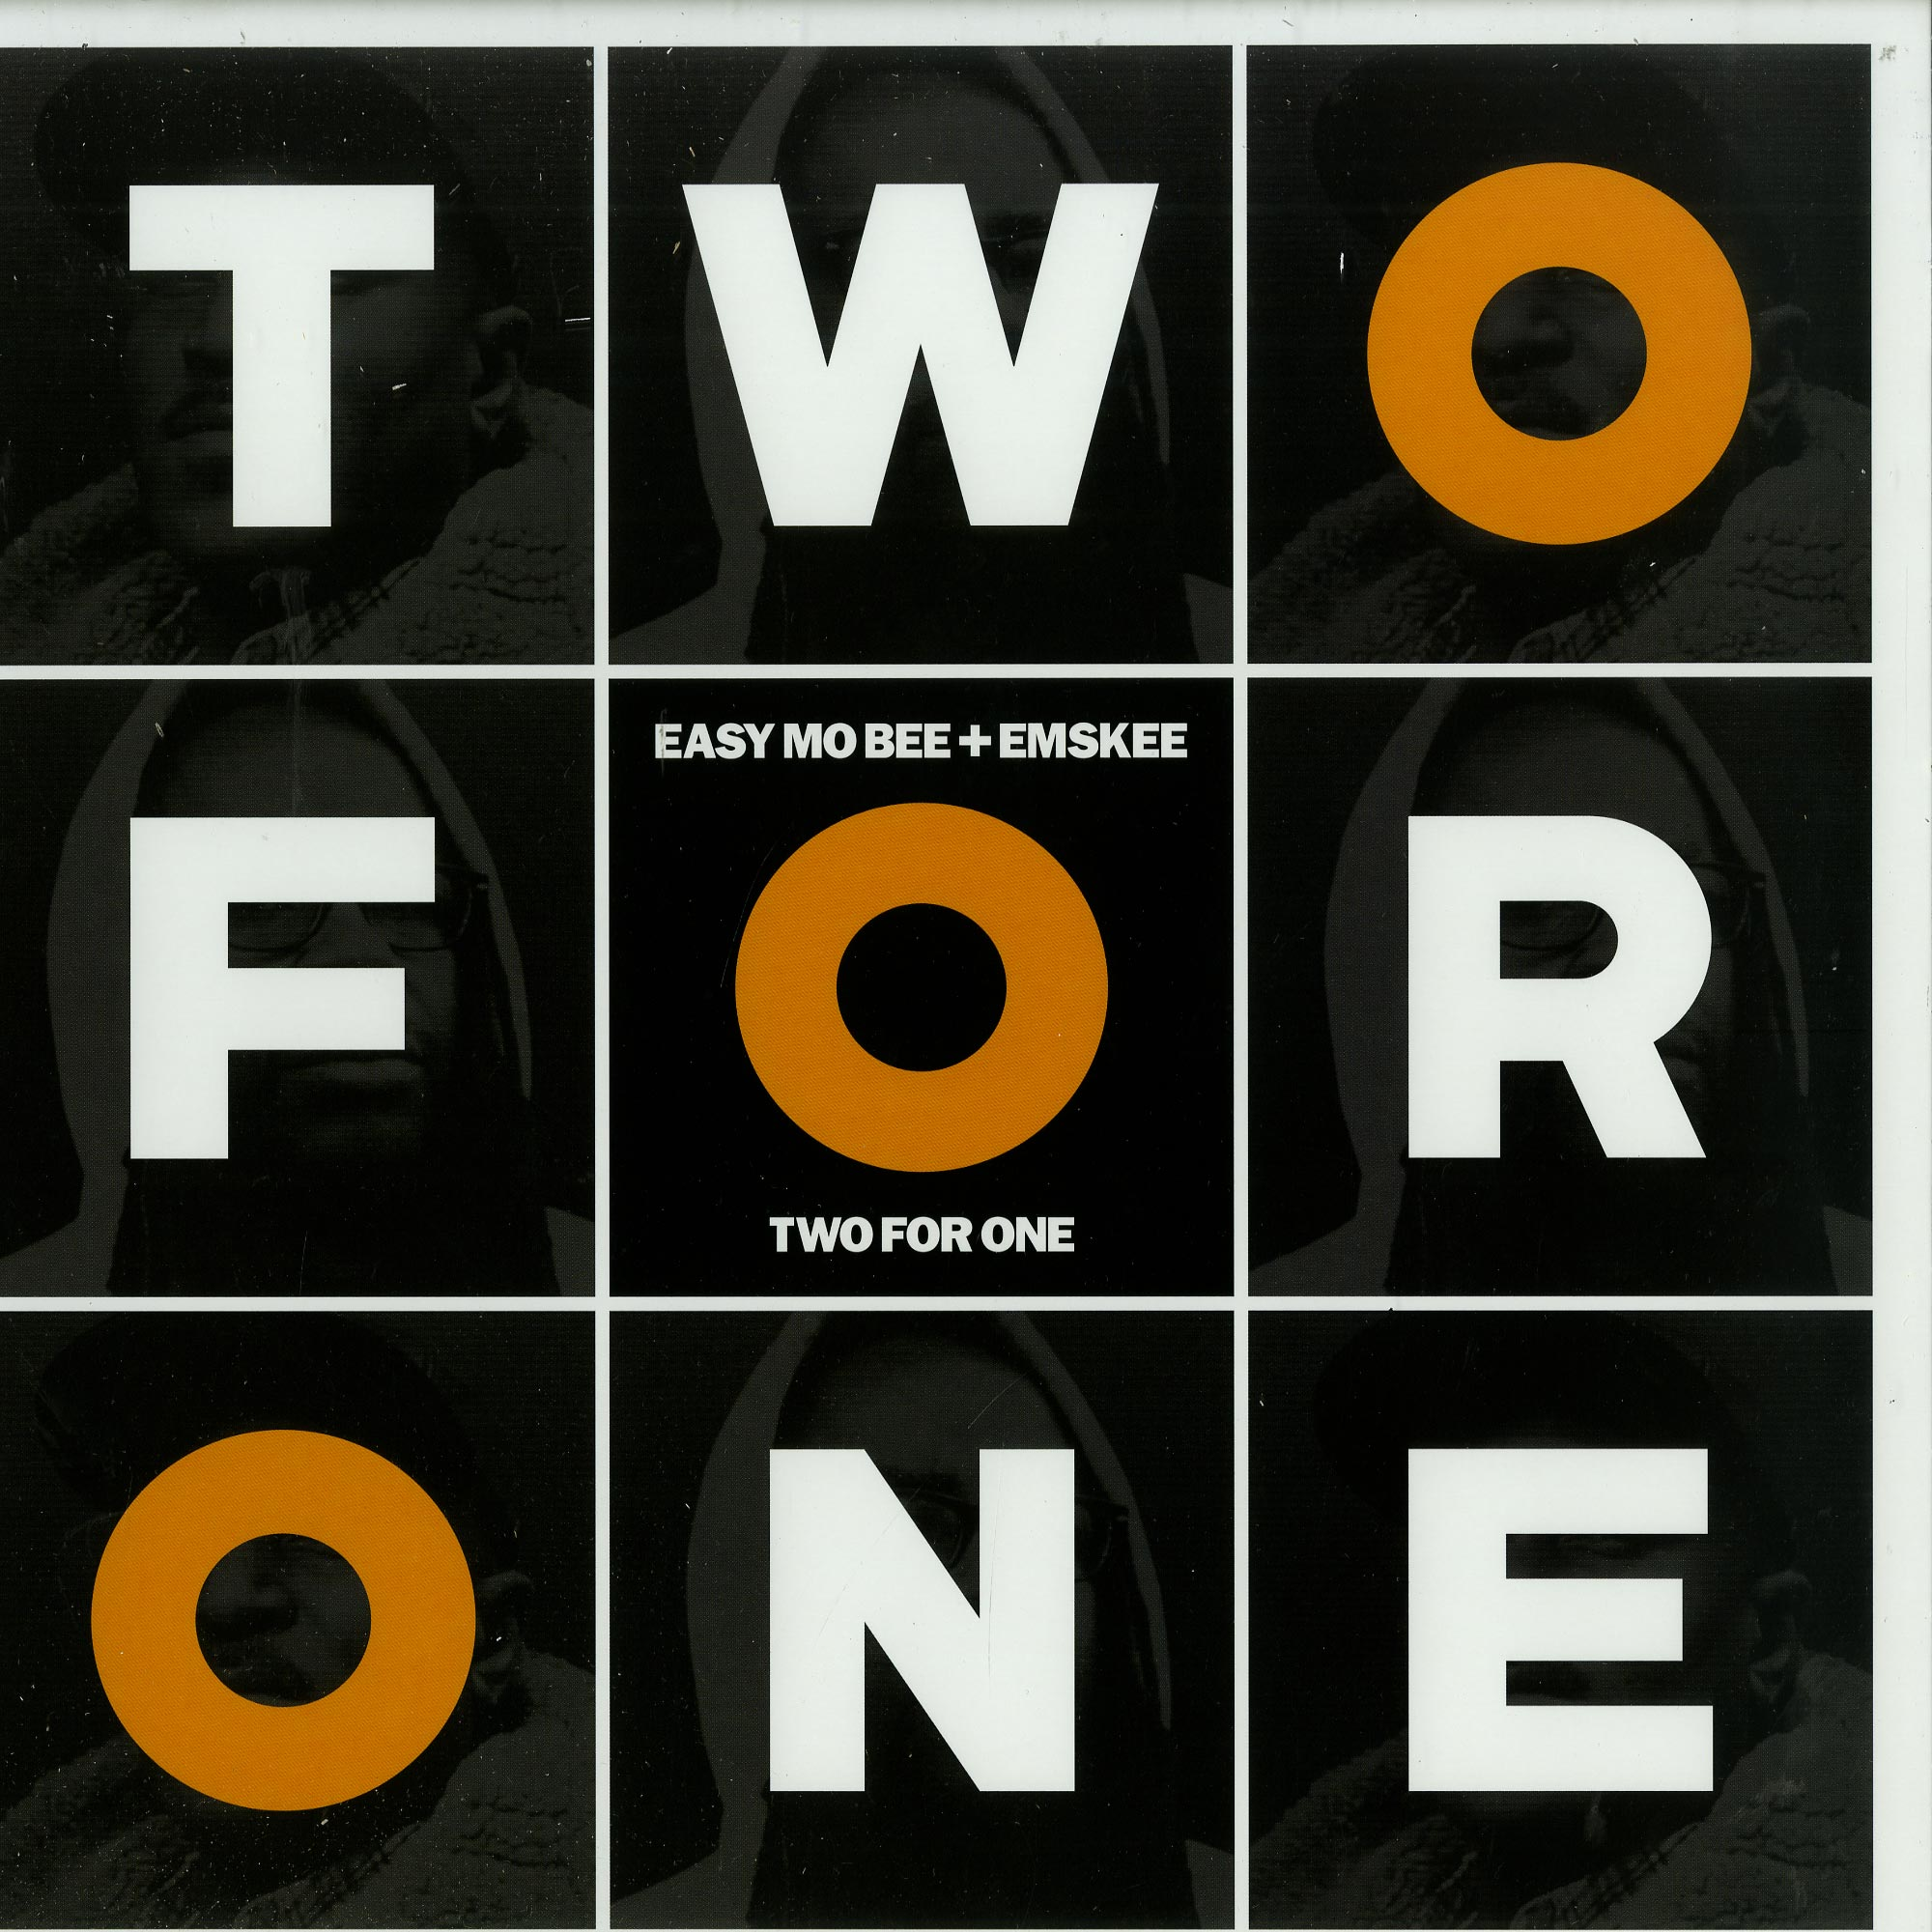 Easy Mo Bee & Emskee - TWO FOR ONE